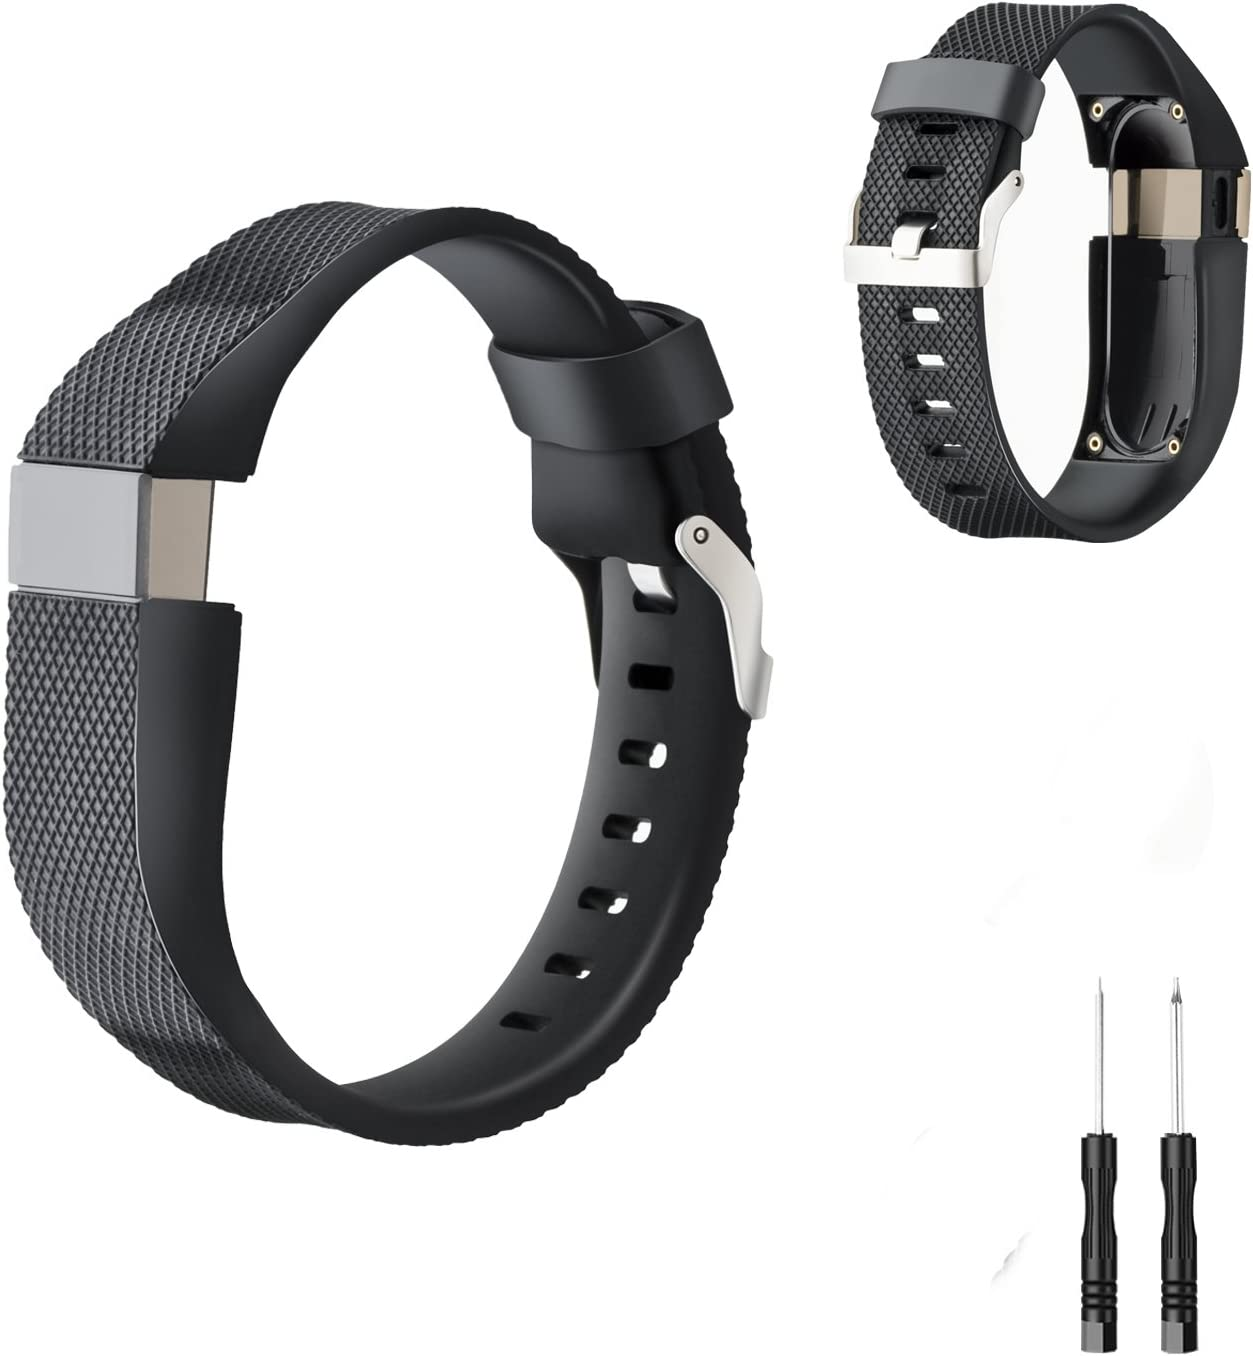 Kerry-cc for Fitbit Charge HR,Bling Jewelry Accessory for Fitbit Charge Fitbit Charge HR